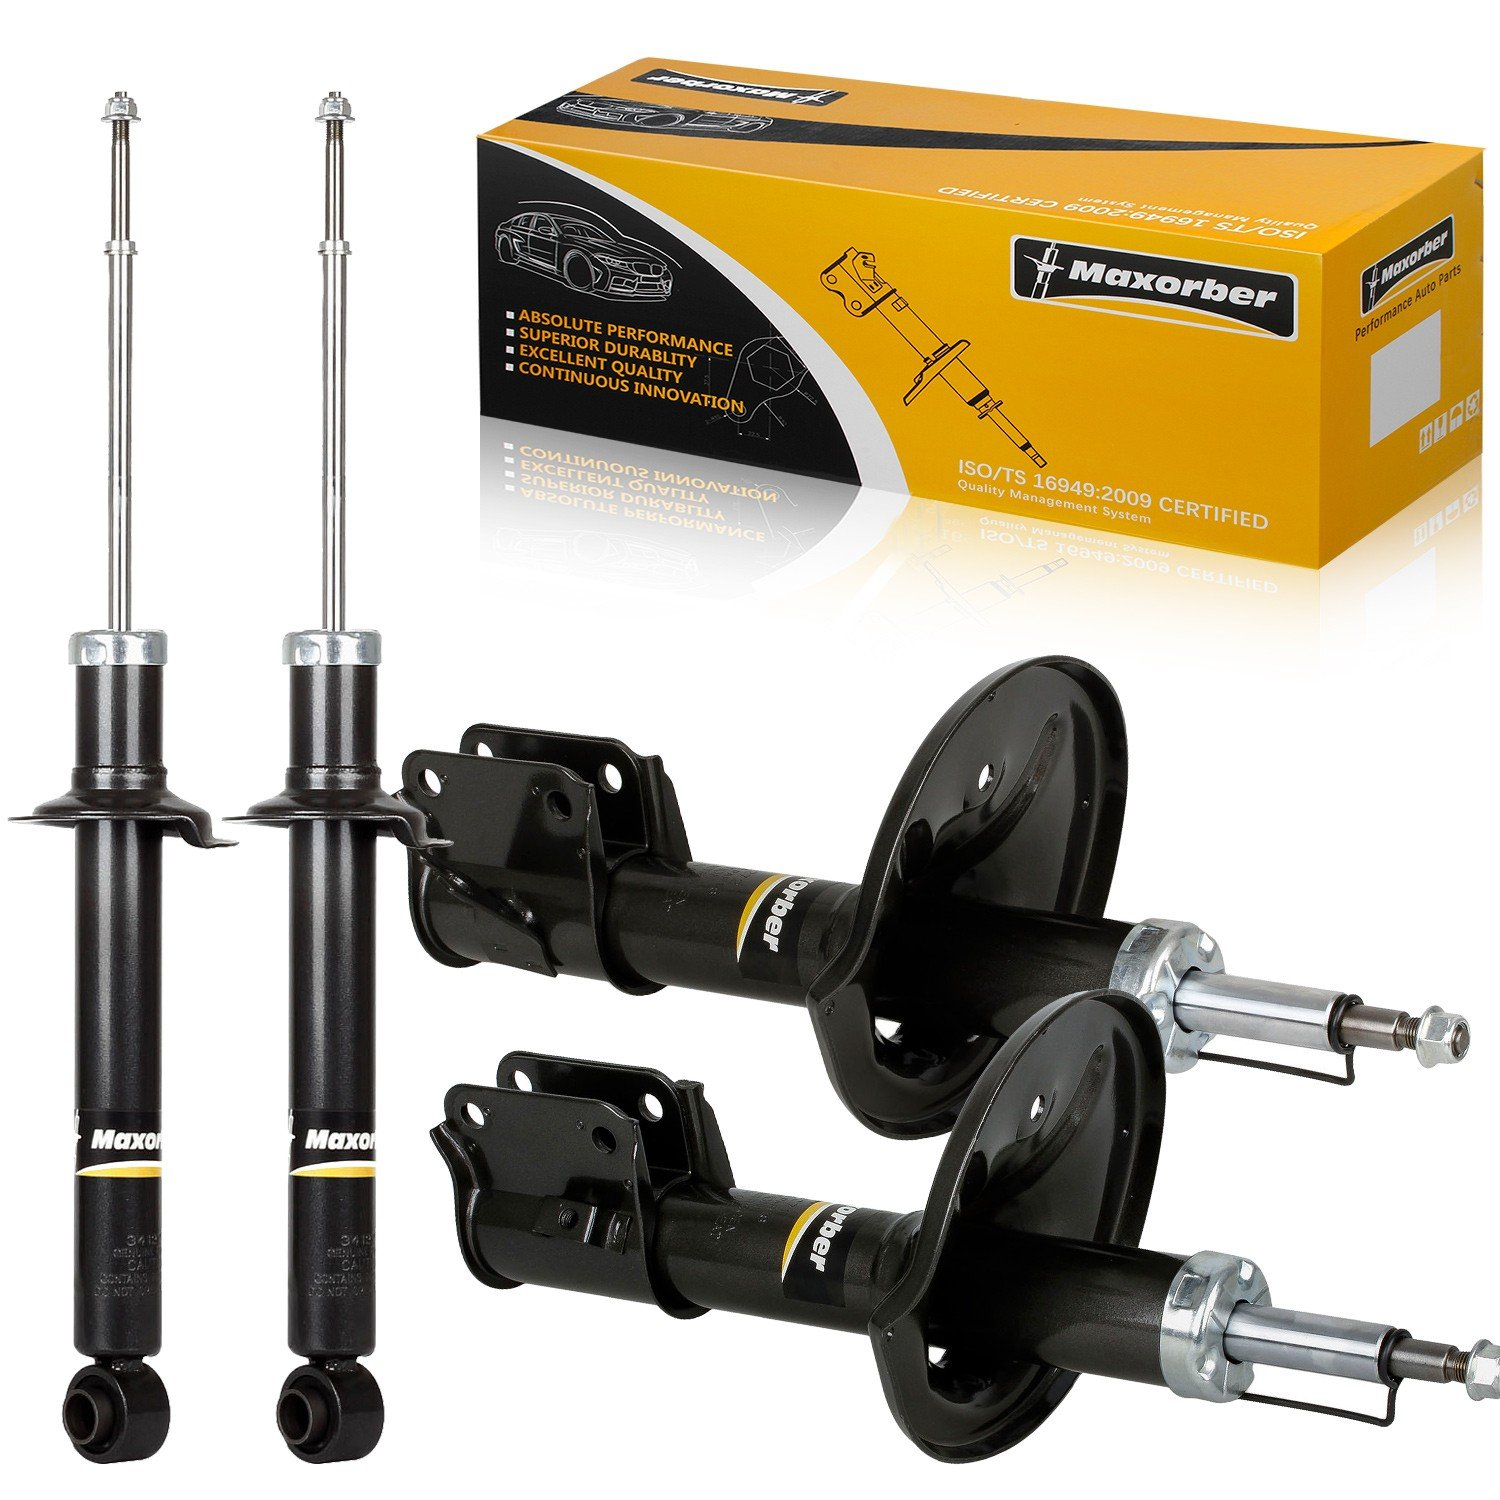 Amazon.com: Maxorber Front & Rear Full Set Shocks Struts Absorber Compatible with 1997-2003 Mitsubishi Diamante 4 Pieces: Automotive